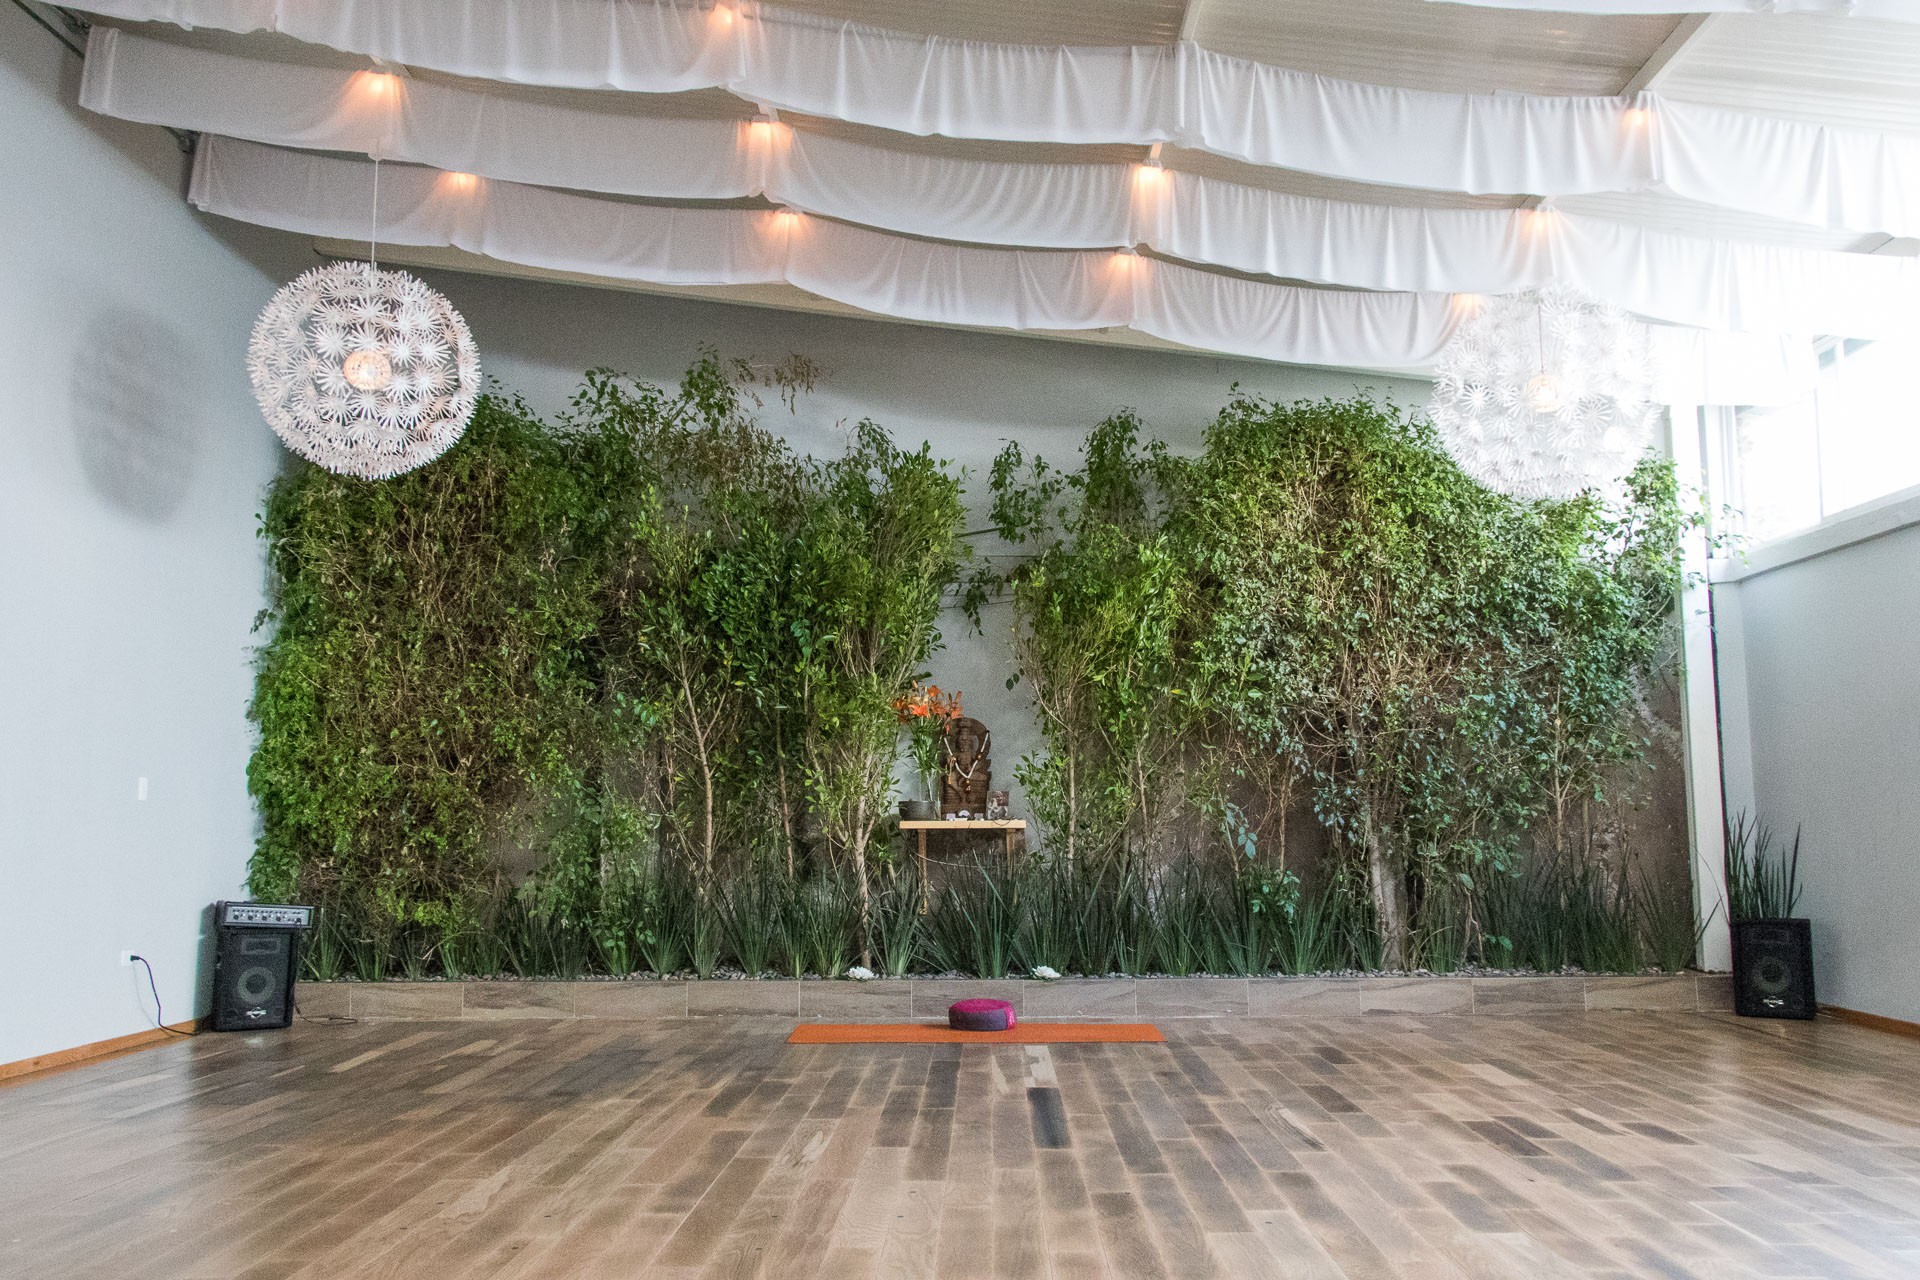 The 10 Best Yoga Studios To Try In Mexico City